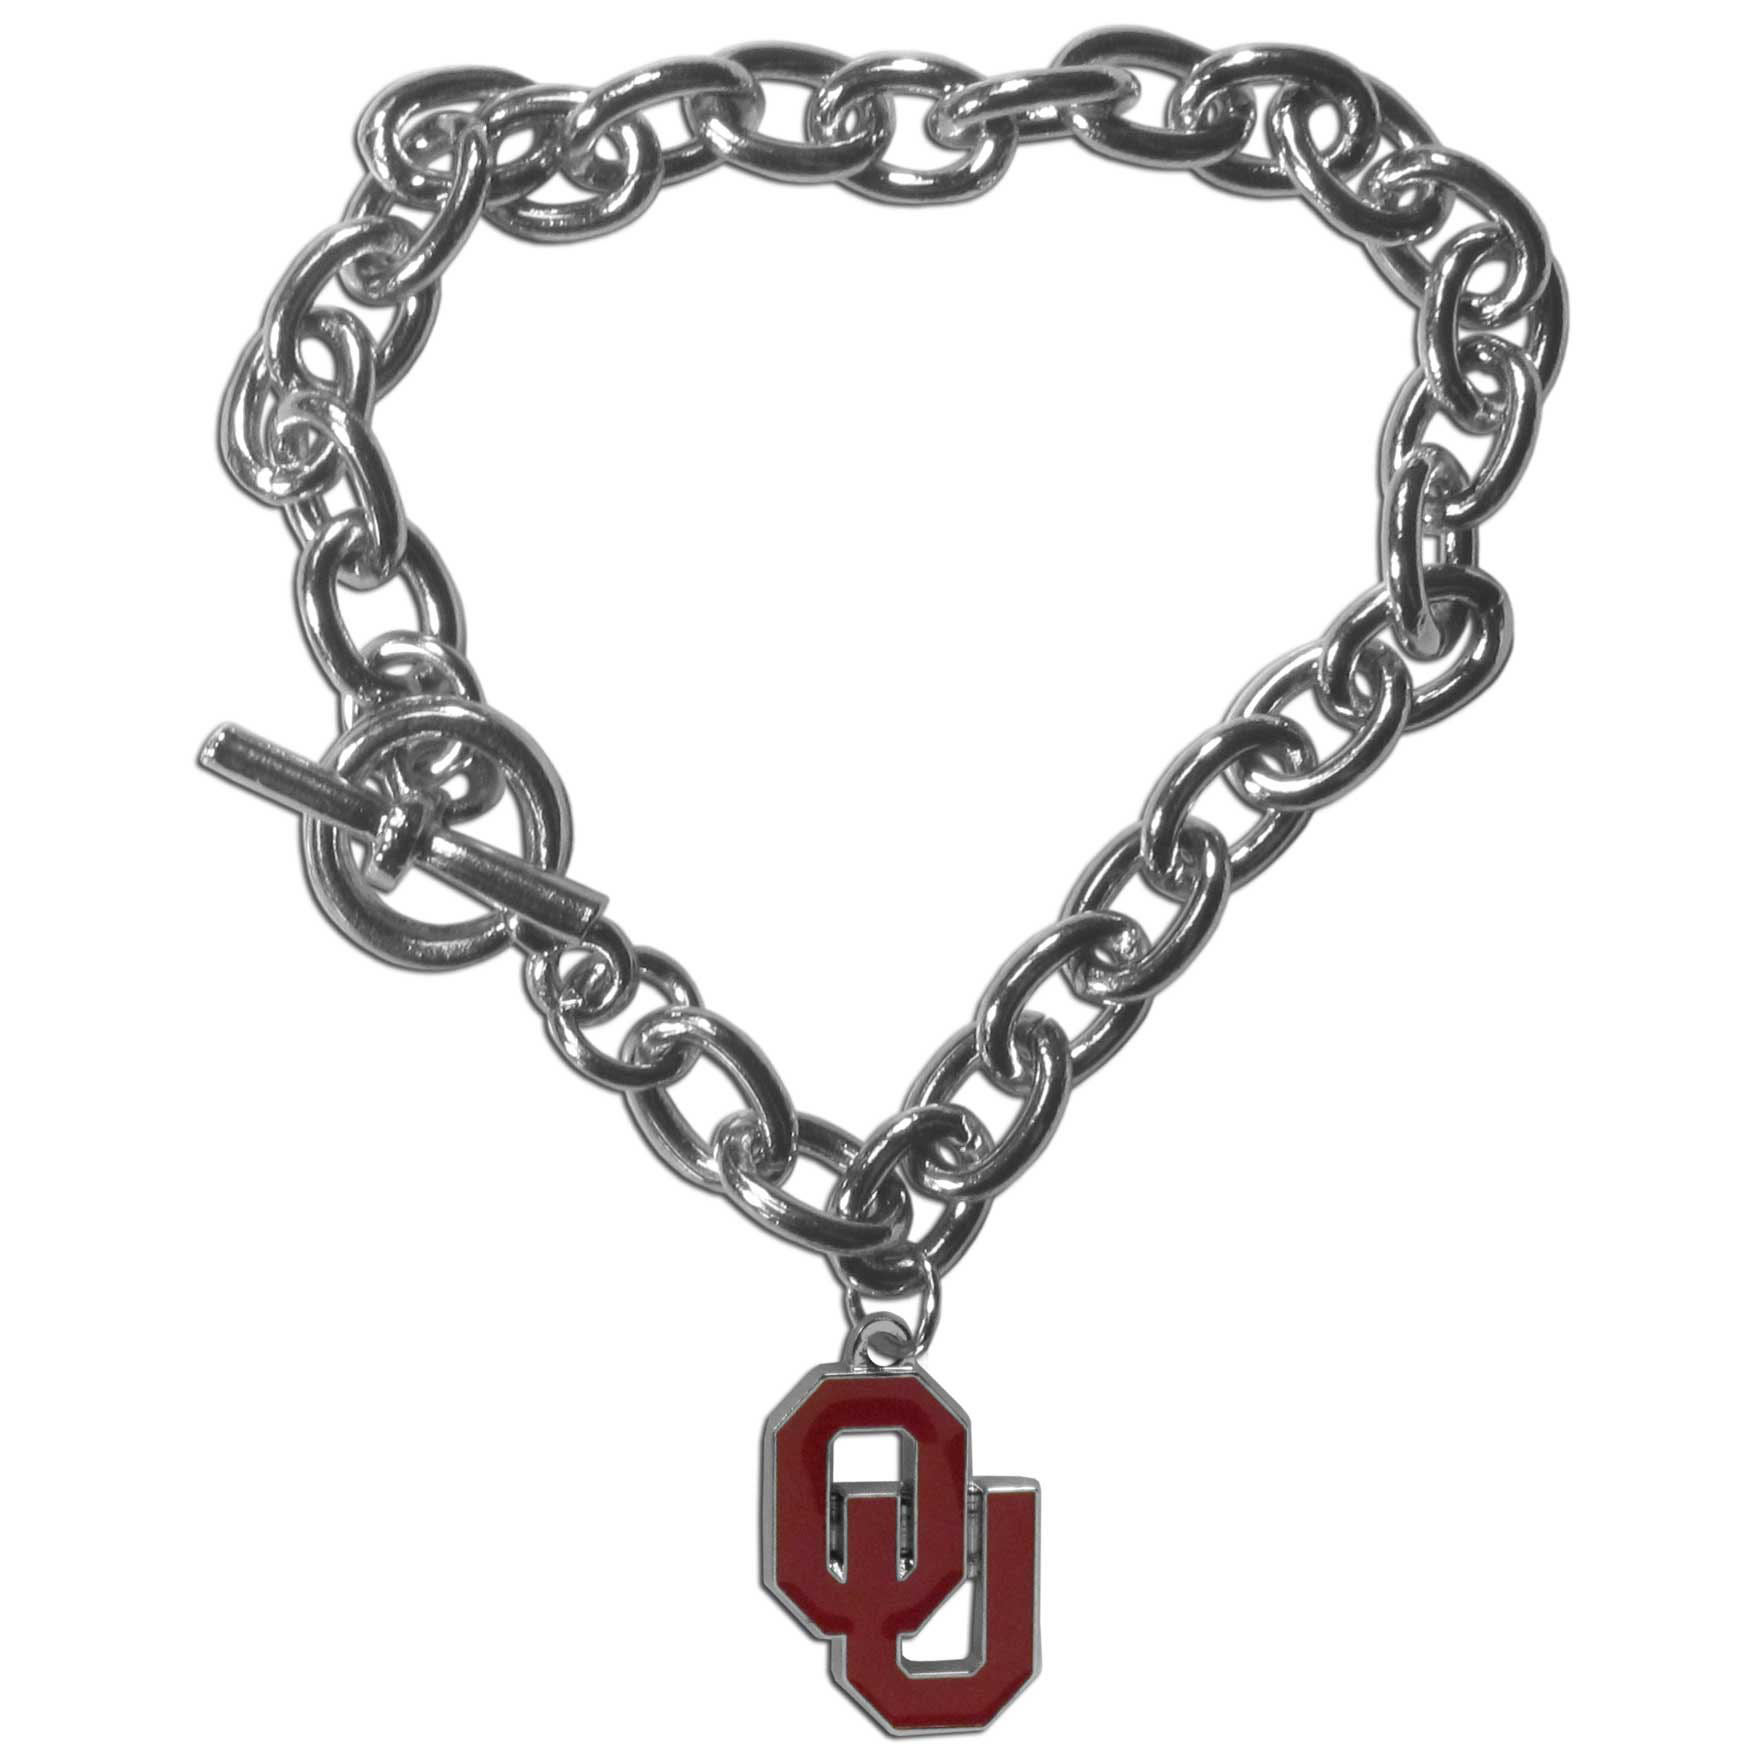 Oklahoma Sooners Charm Chain Bracelet - Our classic single charm bracelet is a great way to show off your team pride! The 7.5 inch large link chain features a high polish Oklahoma Sooners charm and features a toggle clasp which makes it super easy to take on and off.